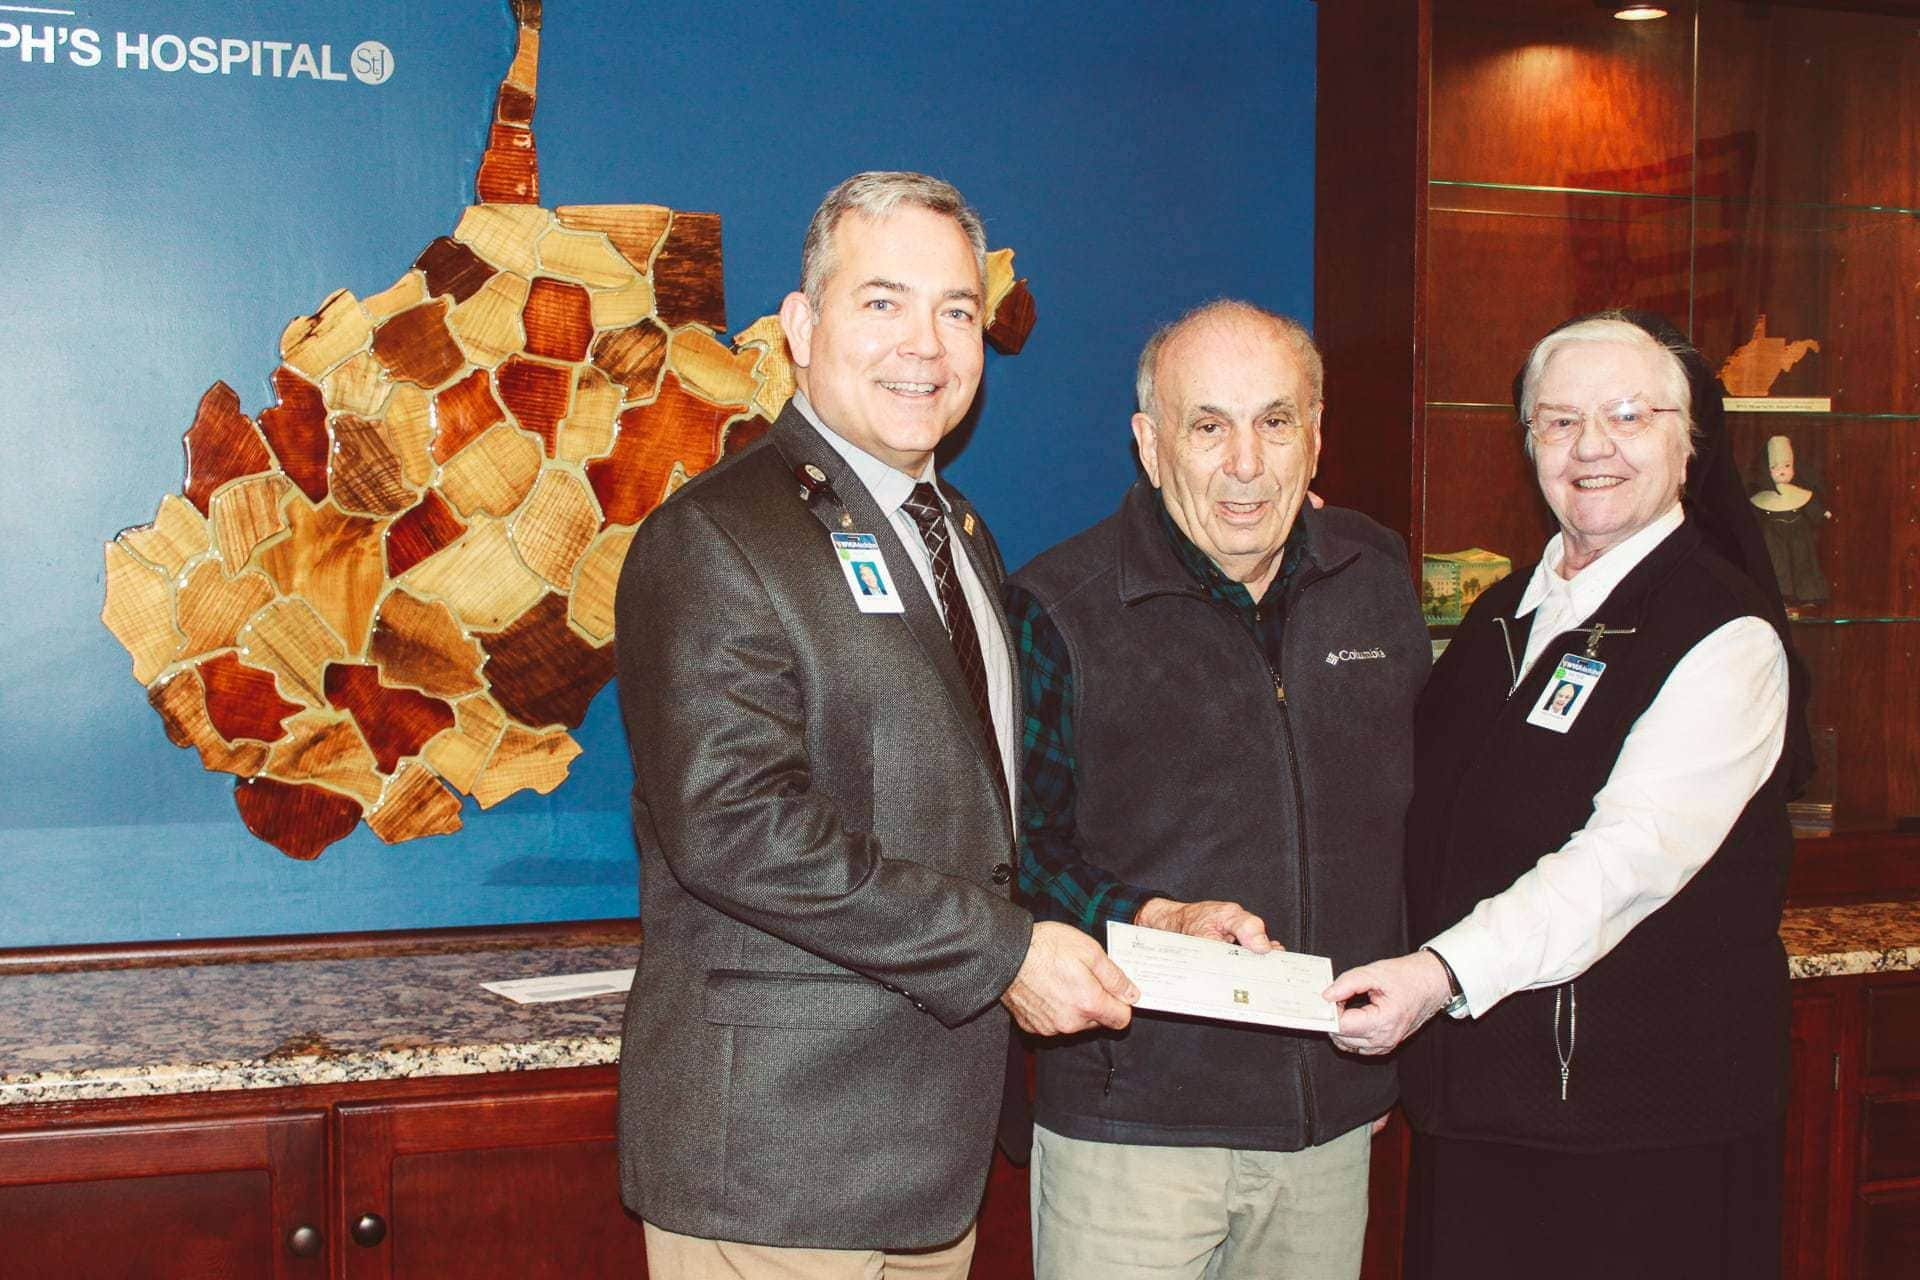 Mike Ross makes donation to St. Joseph's Hospital for new nurse call system